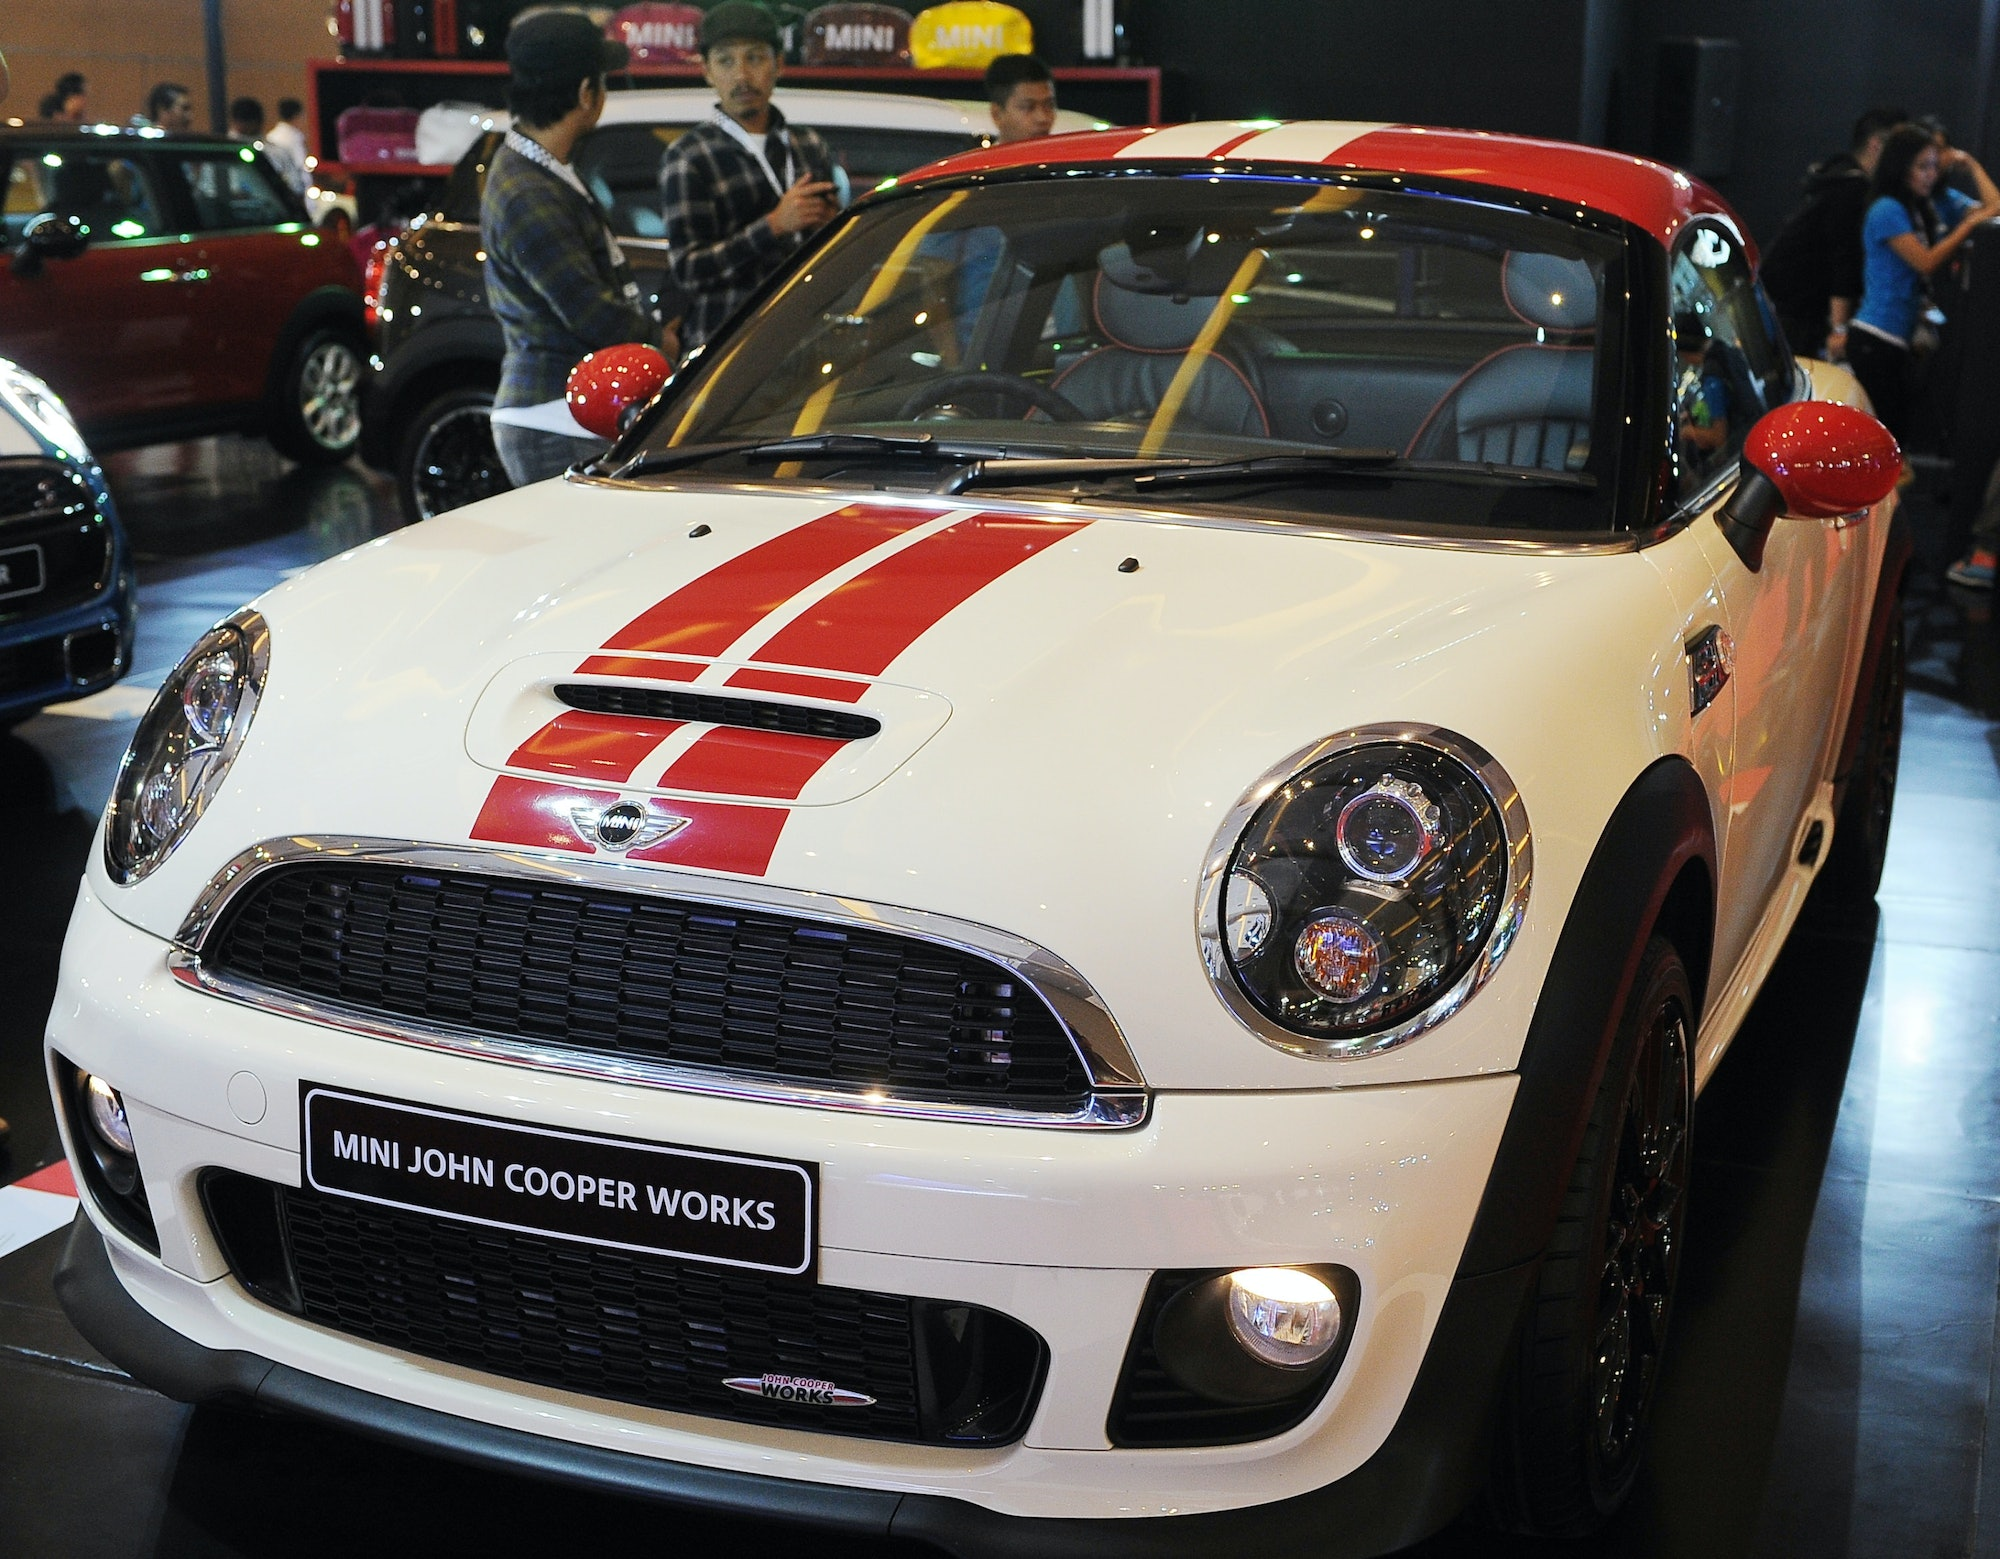 A Mini Cooper. The electric Mini's design has yet to be released.